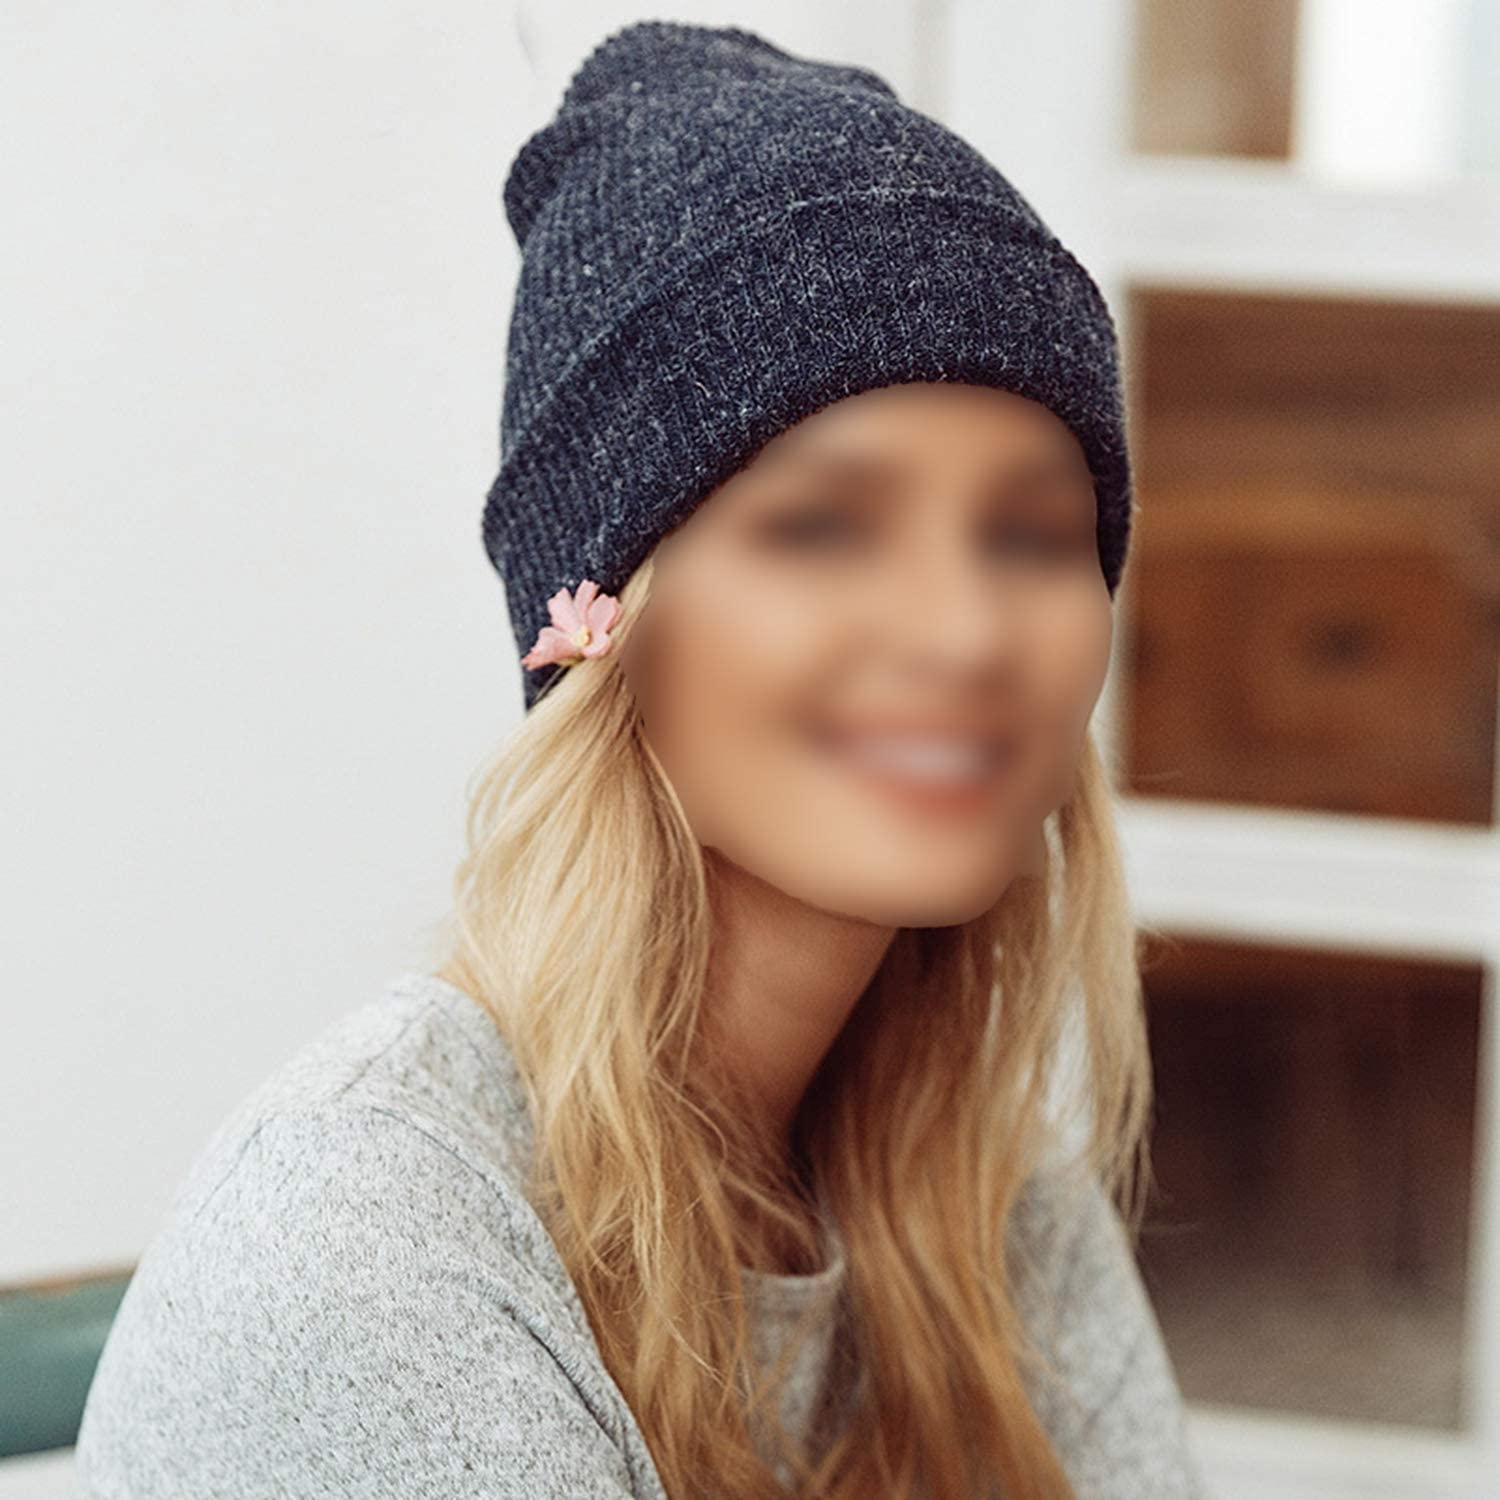 Feisette Knitted Winter Warm Women Beanie Cap Autumn Solid Cotton Blend Ladies fold hat Casual Streetwear Feminino